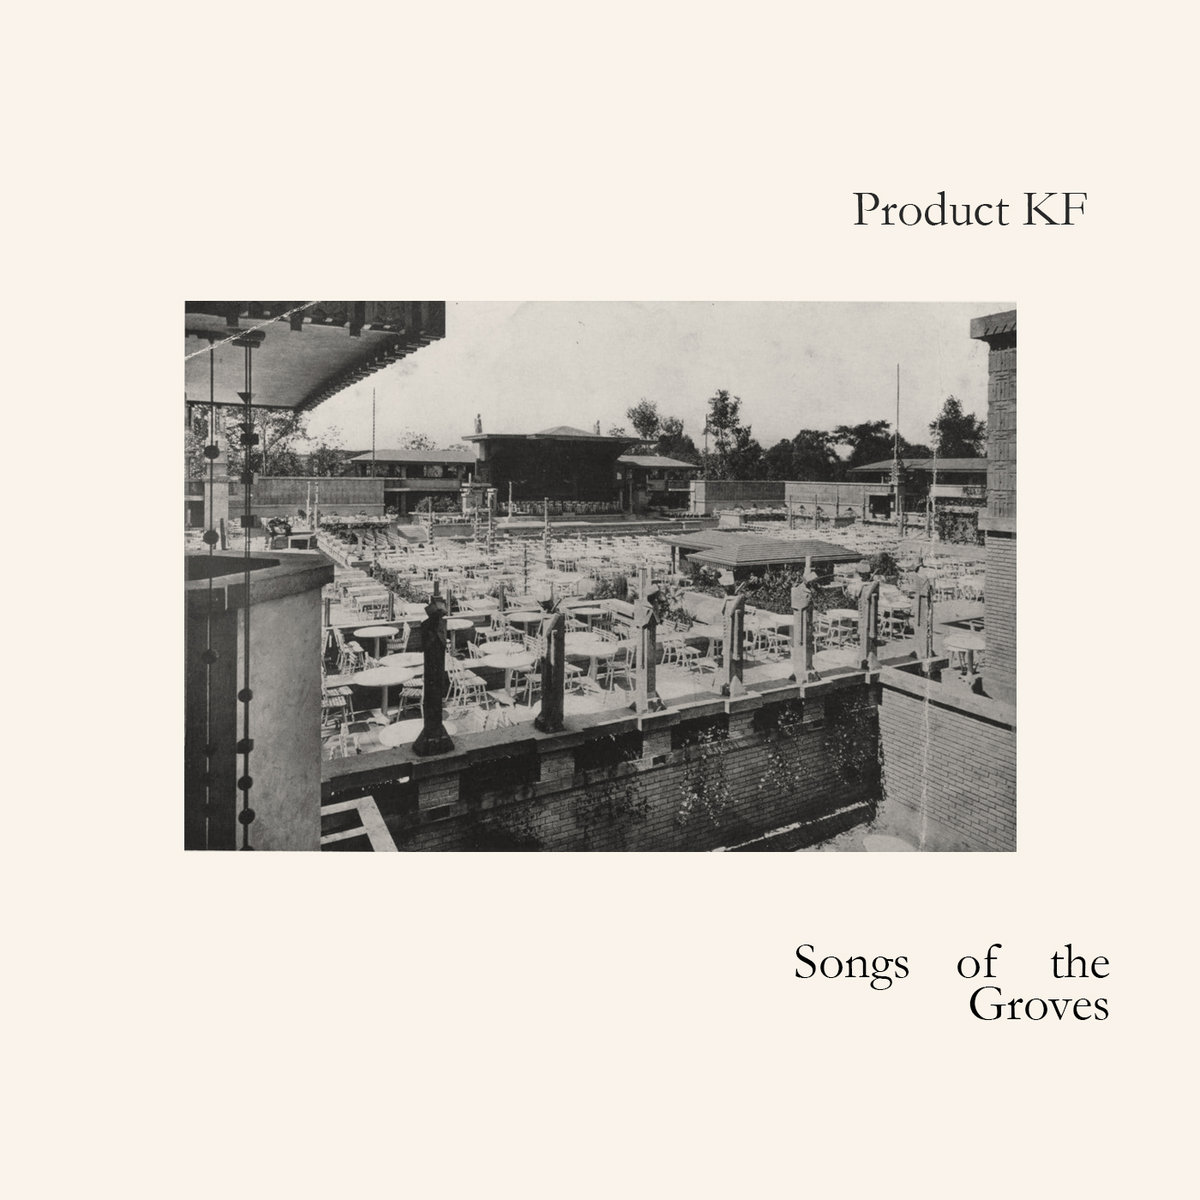 Product KF cover